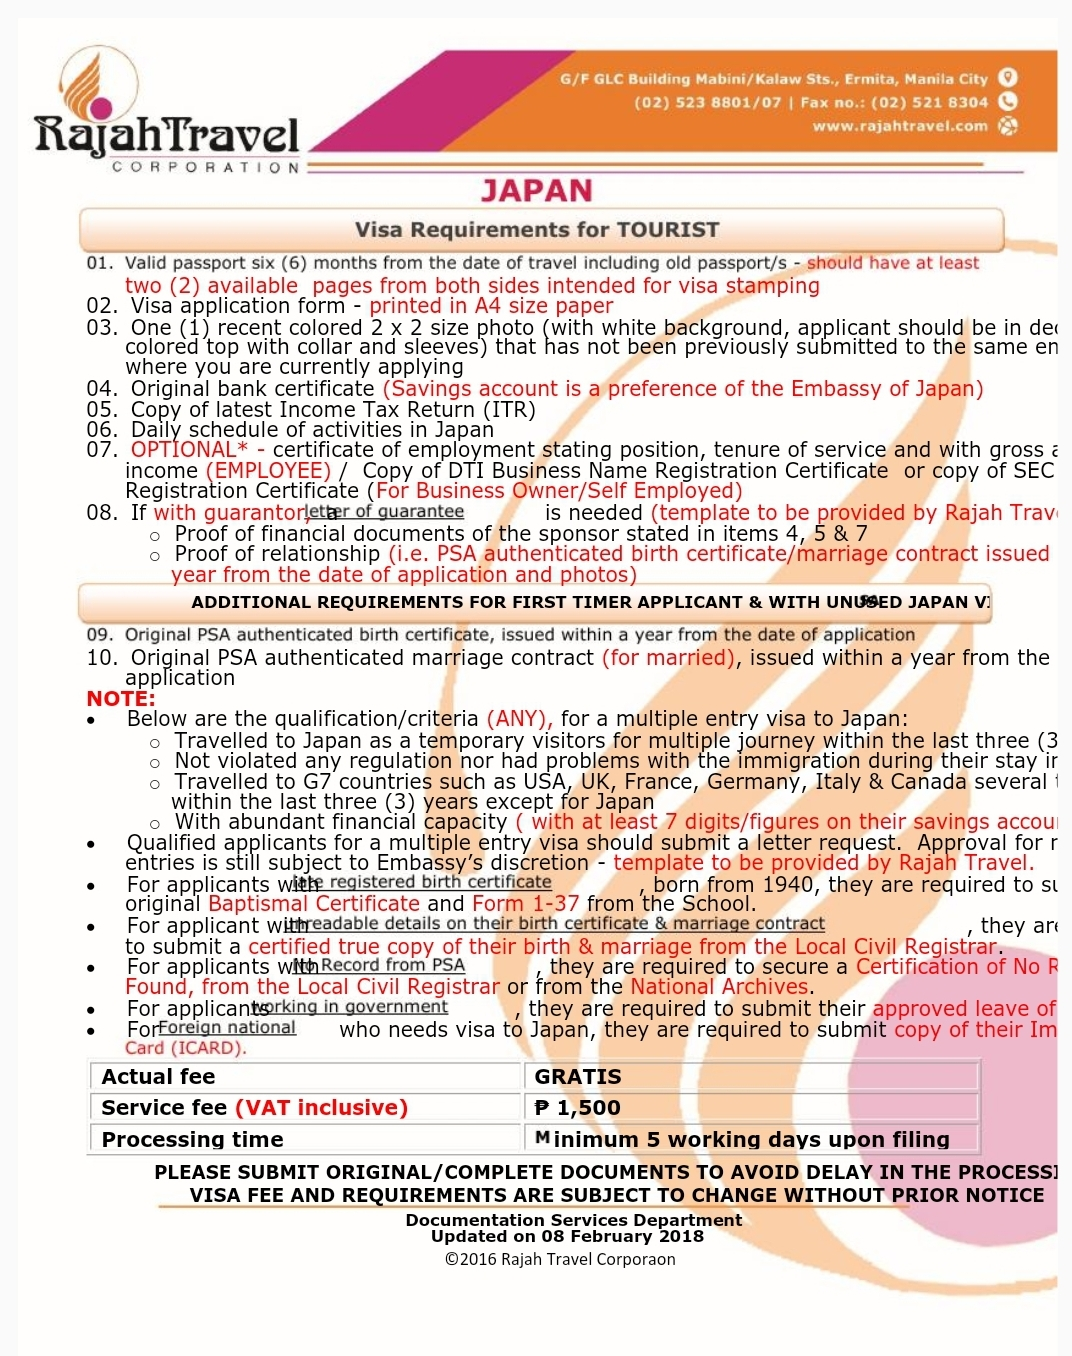 Pinoy Roadtrip Japan My Guide On How To Apply For A 5 Year Multiple Entry Japan Tourist Visa